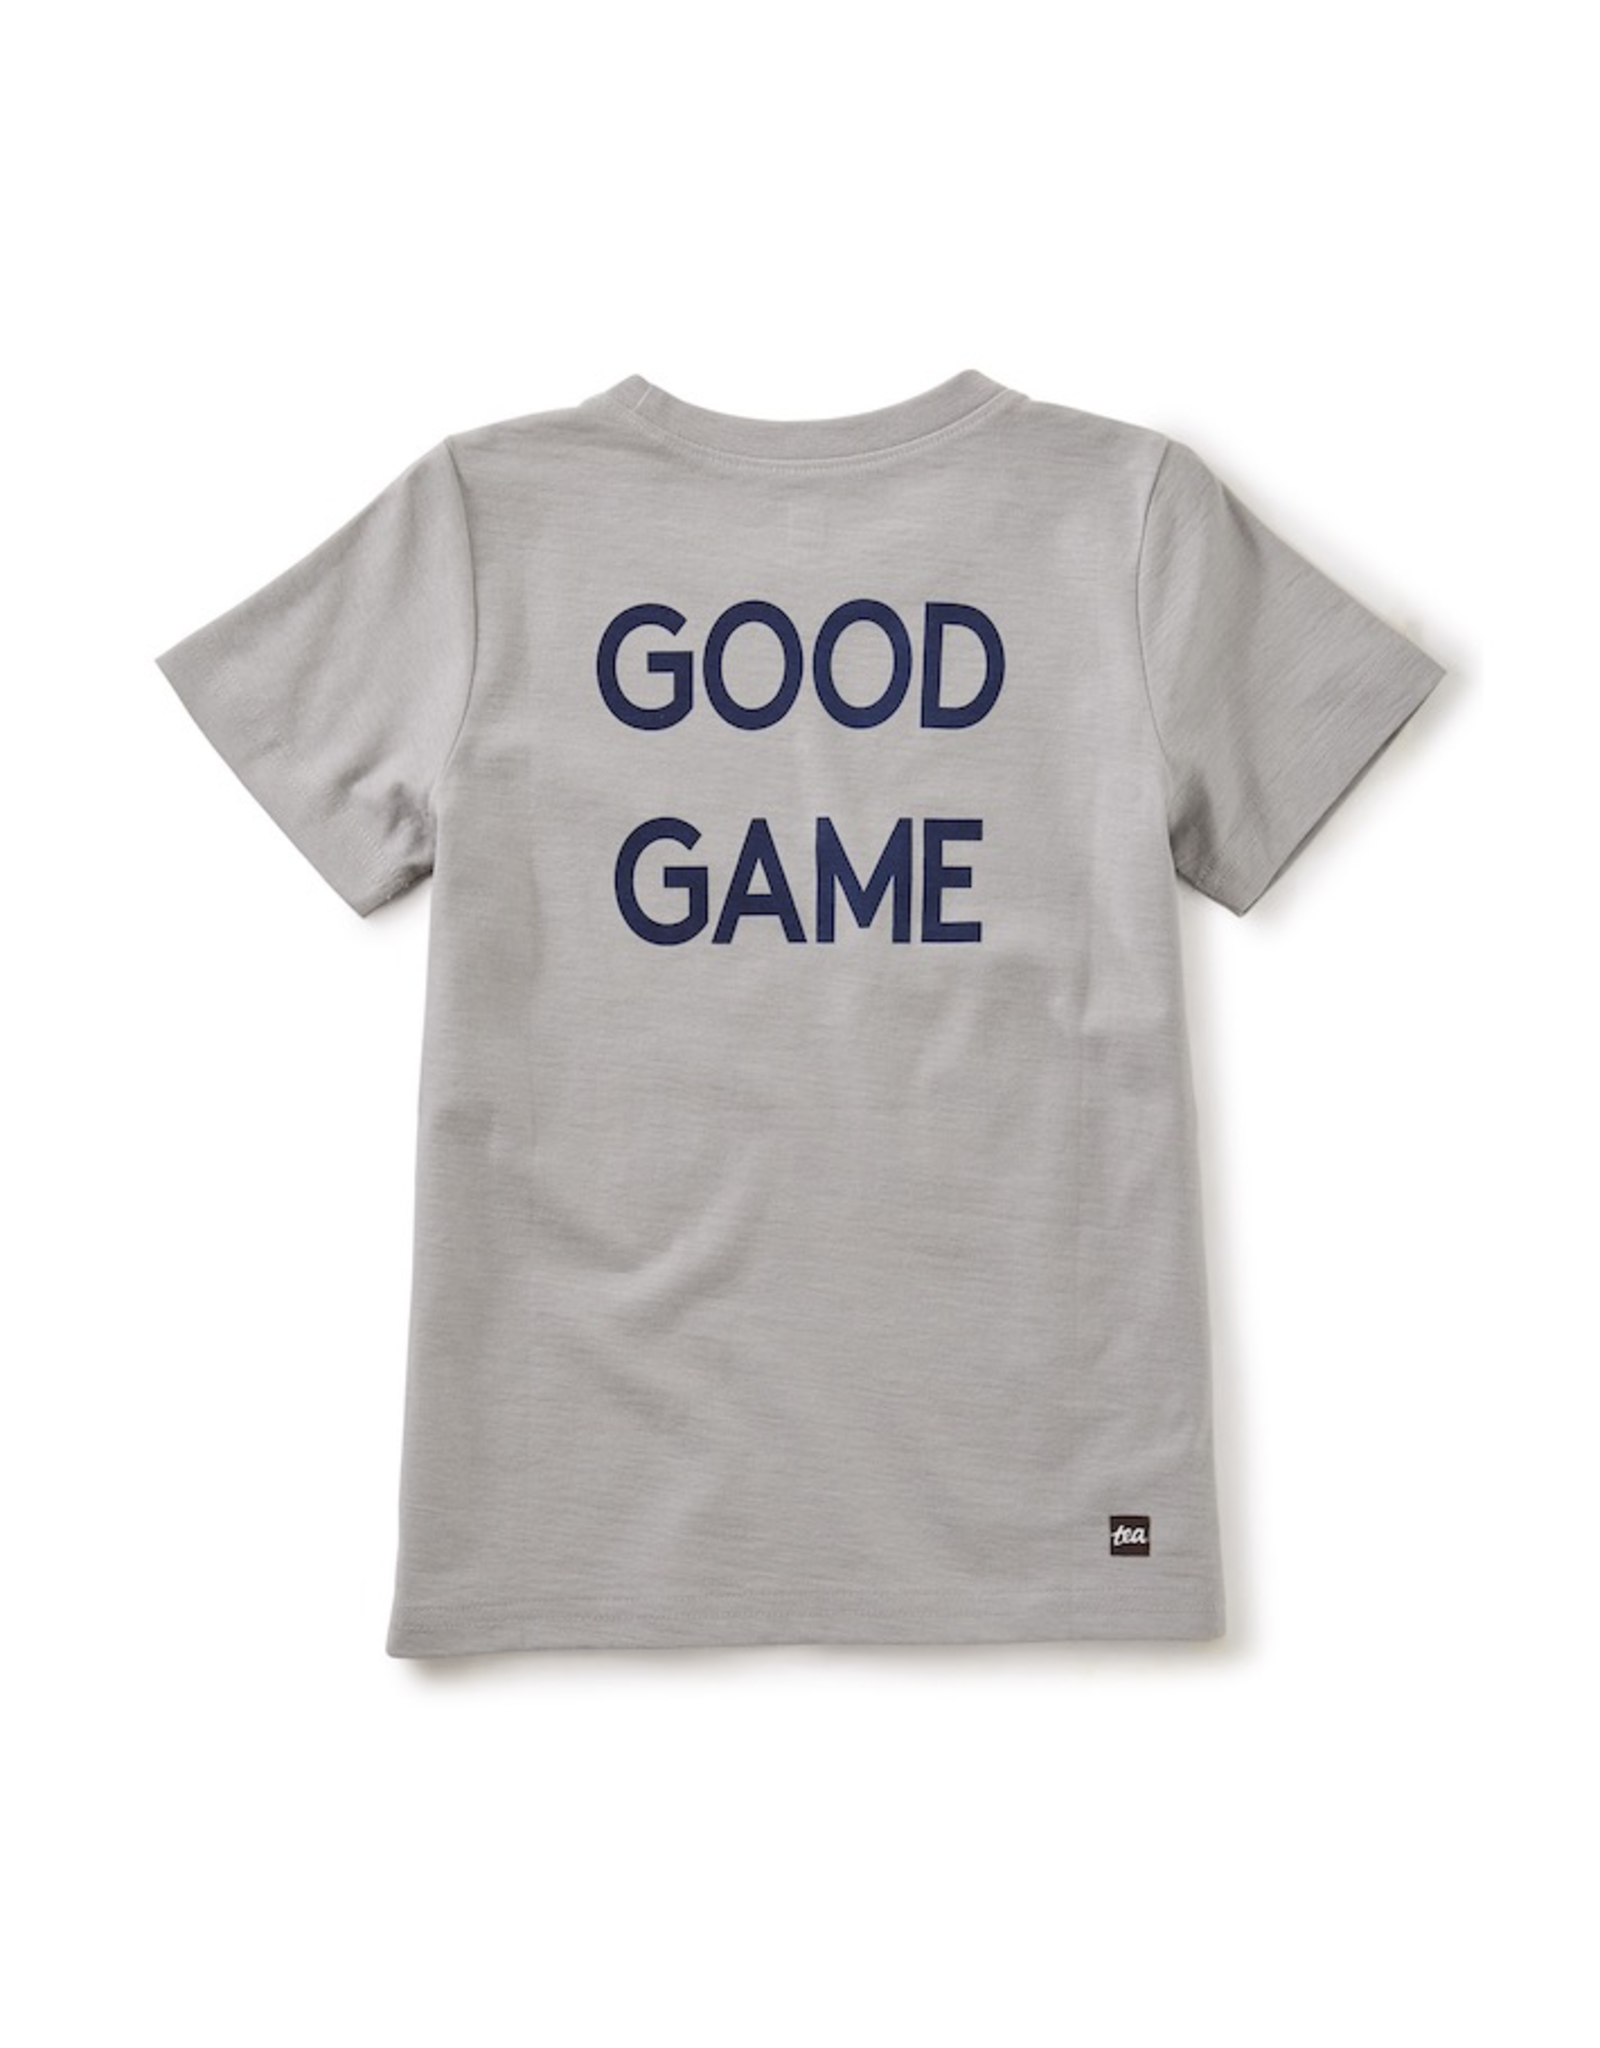 Tea Collection Good Game Graphic Tee